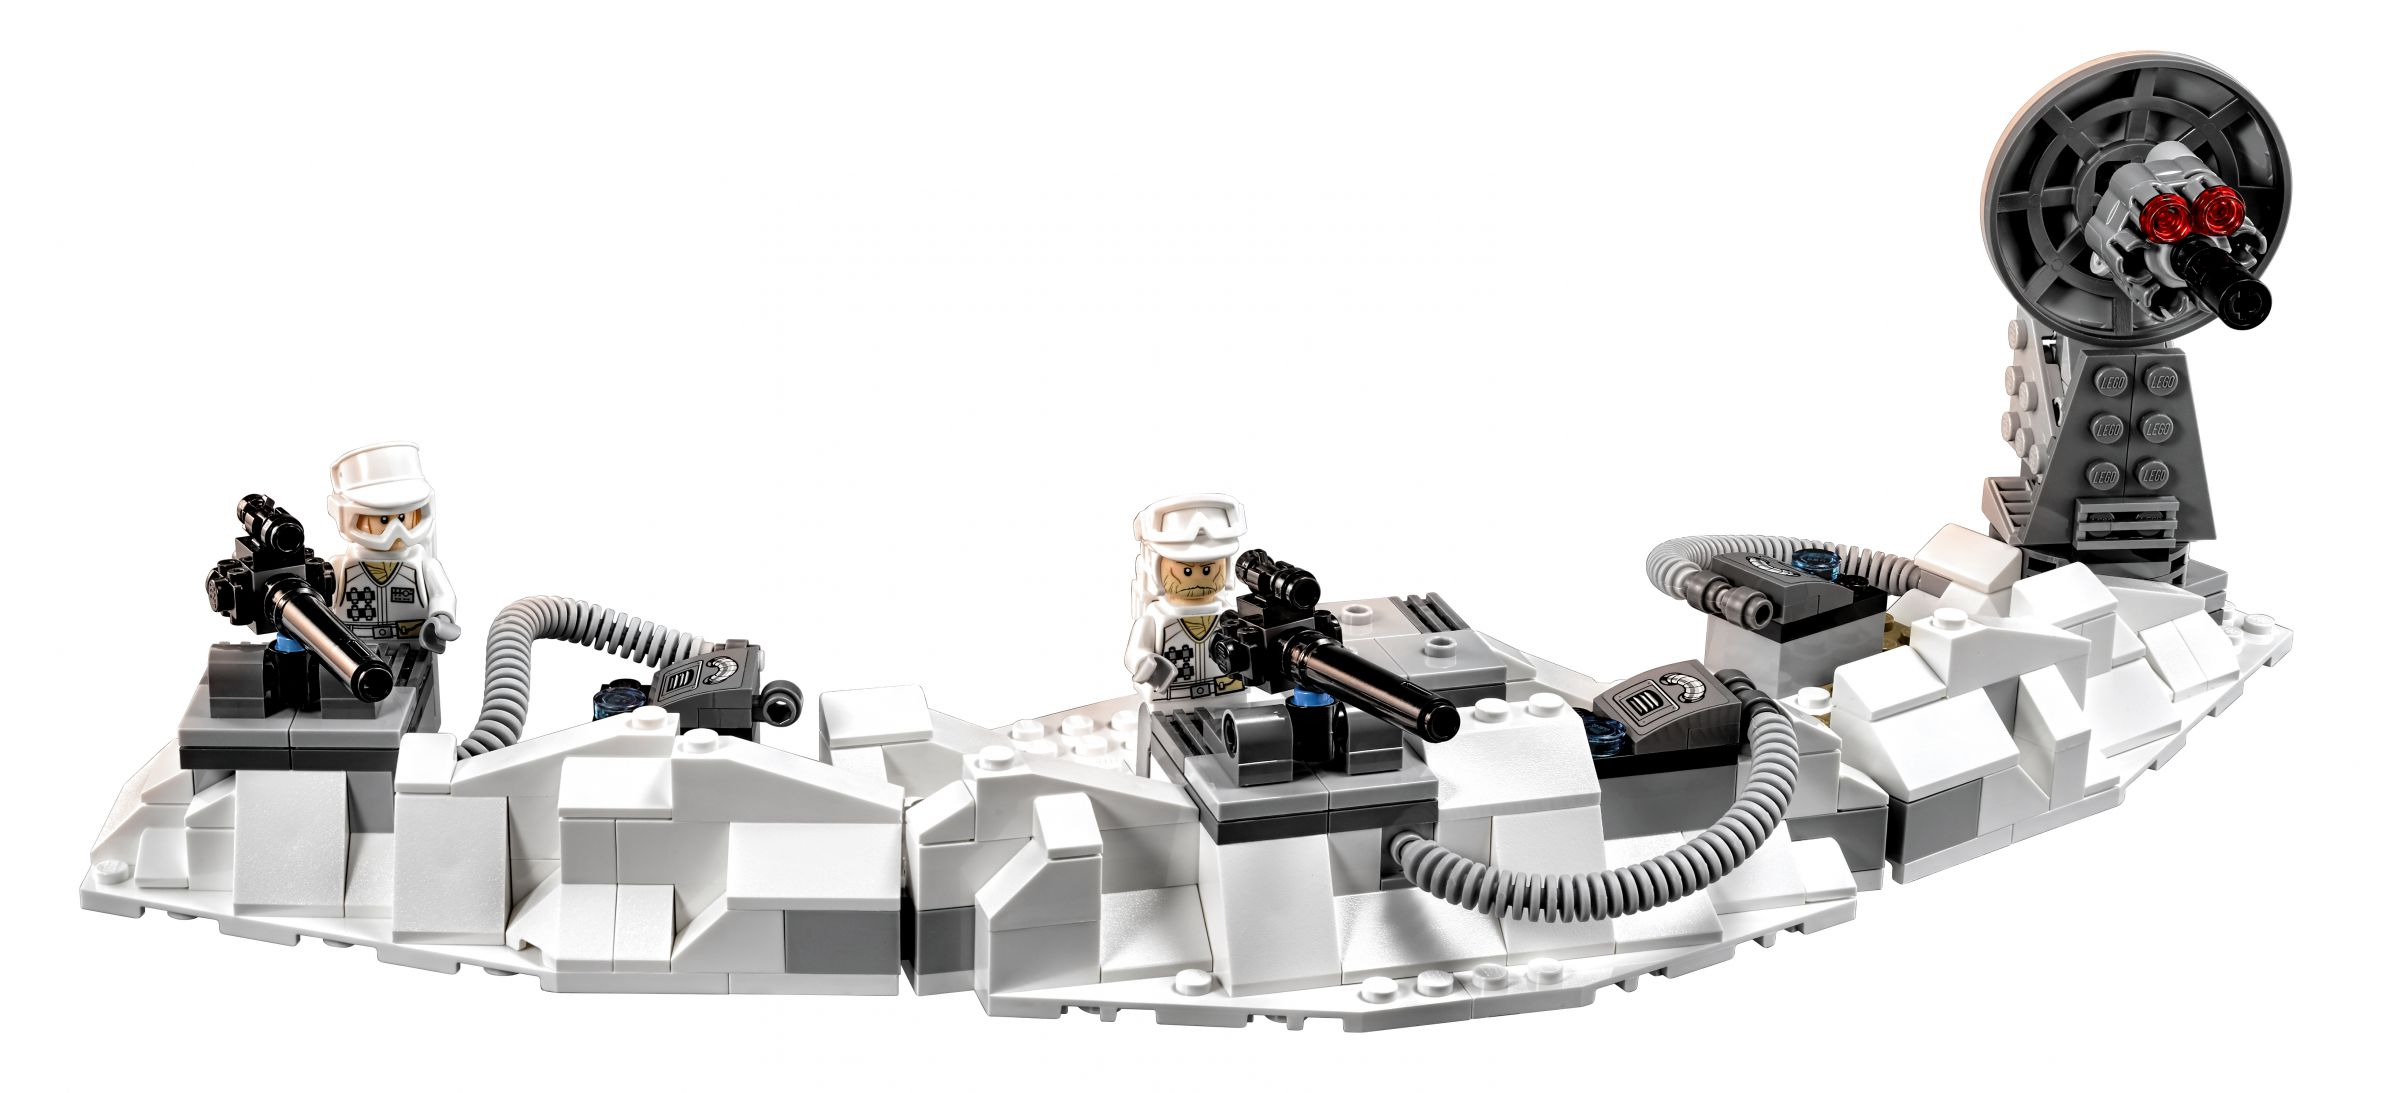 LEGO Star Wars 75098 Angriff auf Hoth™ LEGO-75098-Assault-on-Hoth-Front_002.jpg